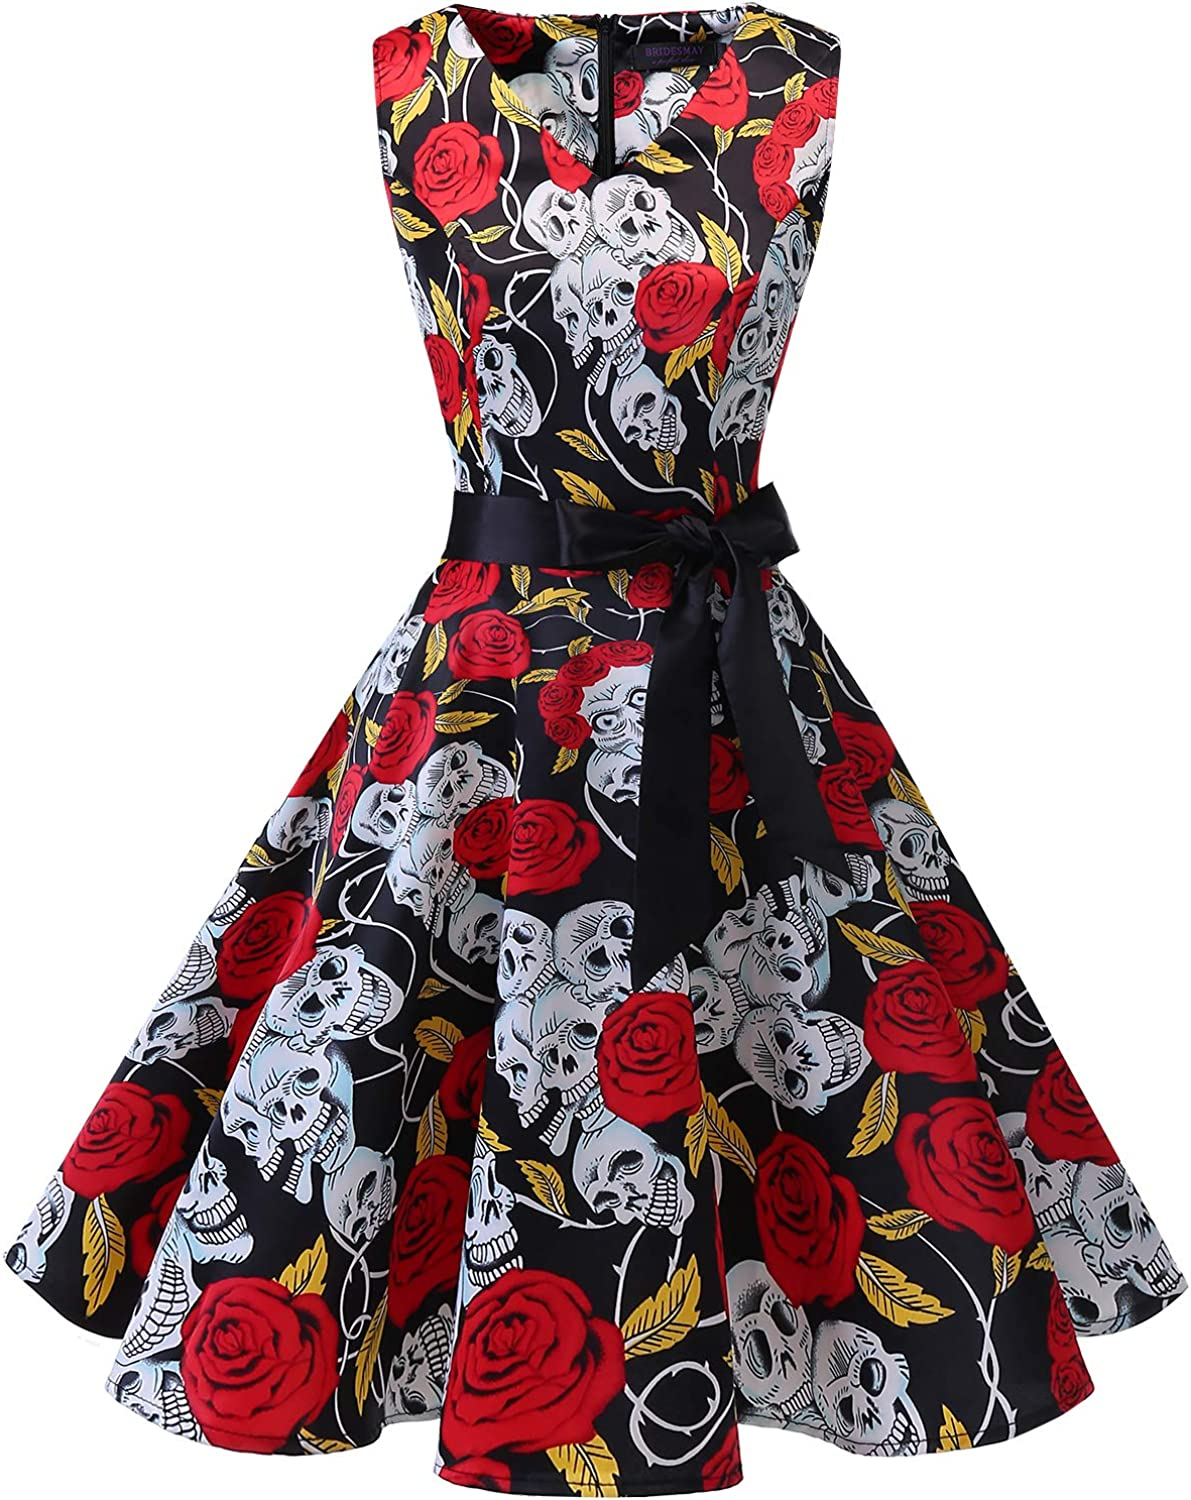 Bridesmay Women's VNeck Audrey Hepburn 50s Vintage Elegant Floral Rockabilly Swing Cocktail Party Dress